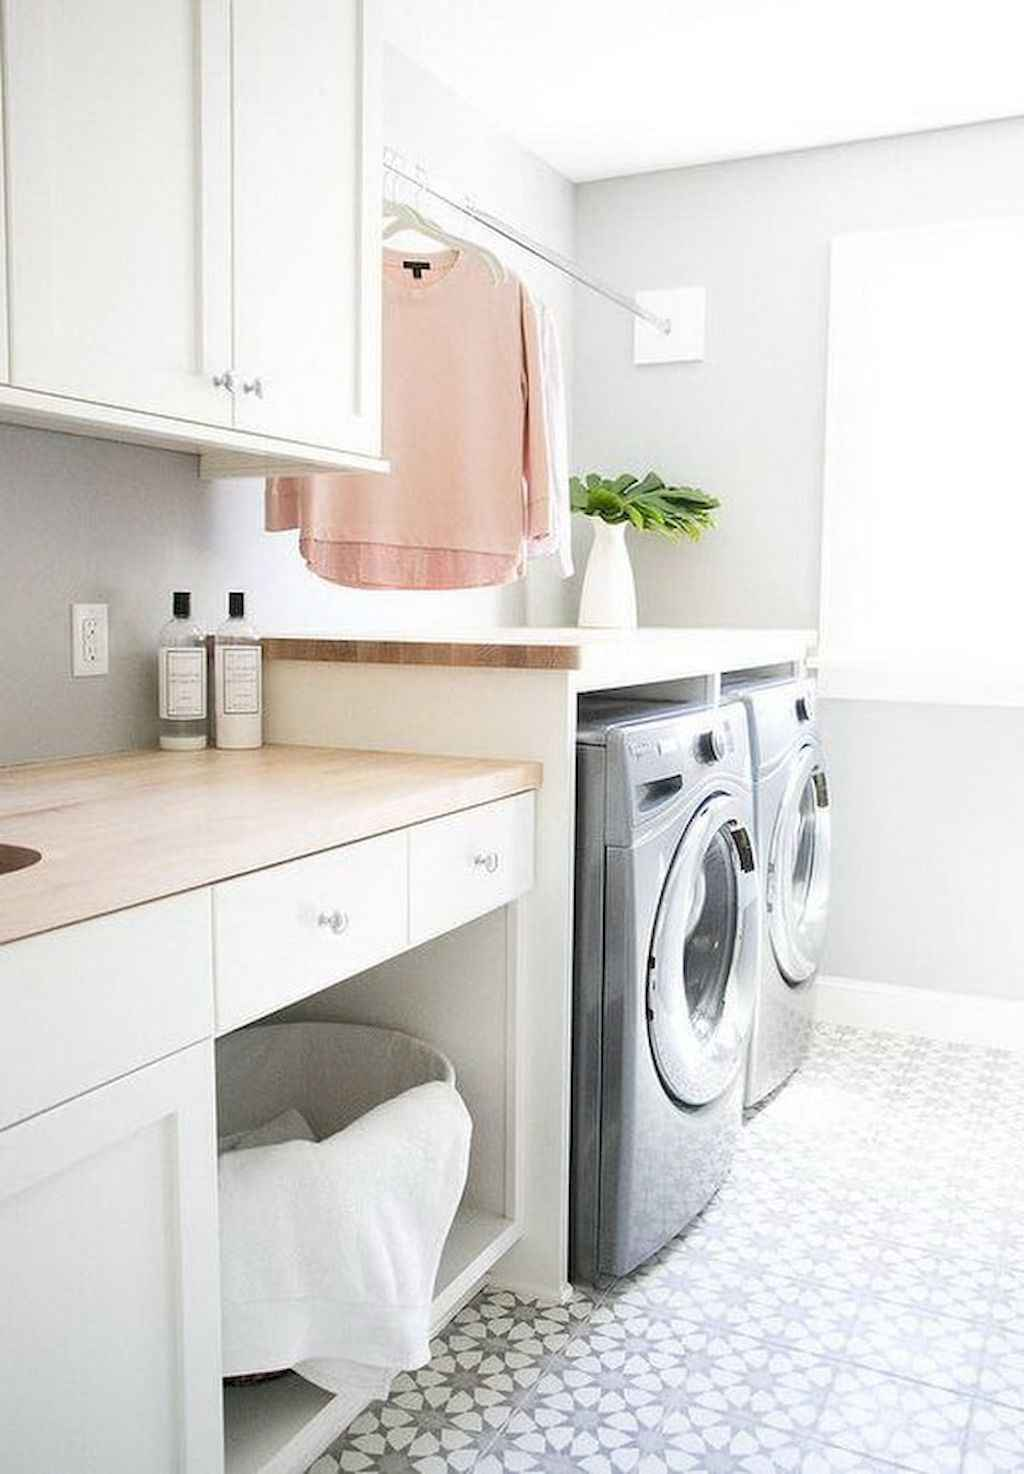 45 Rustic Farmhouse Laundry Room Design Ideas and Makeover (32)